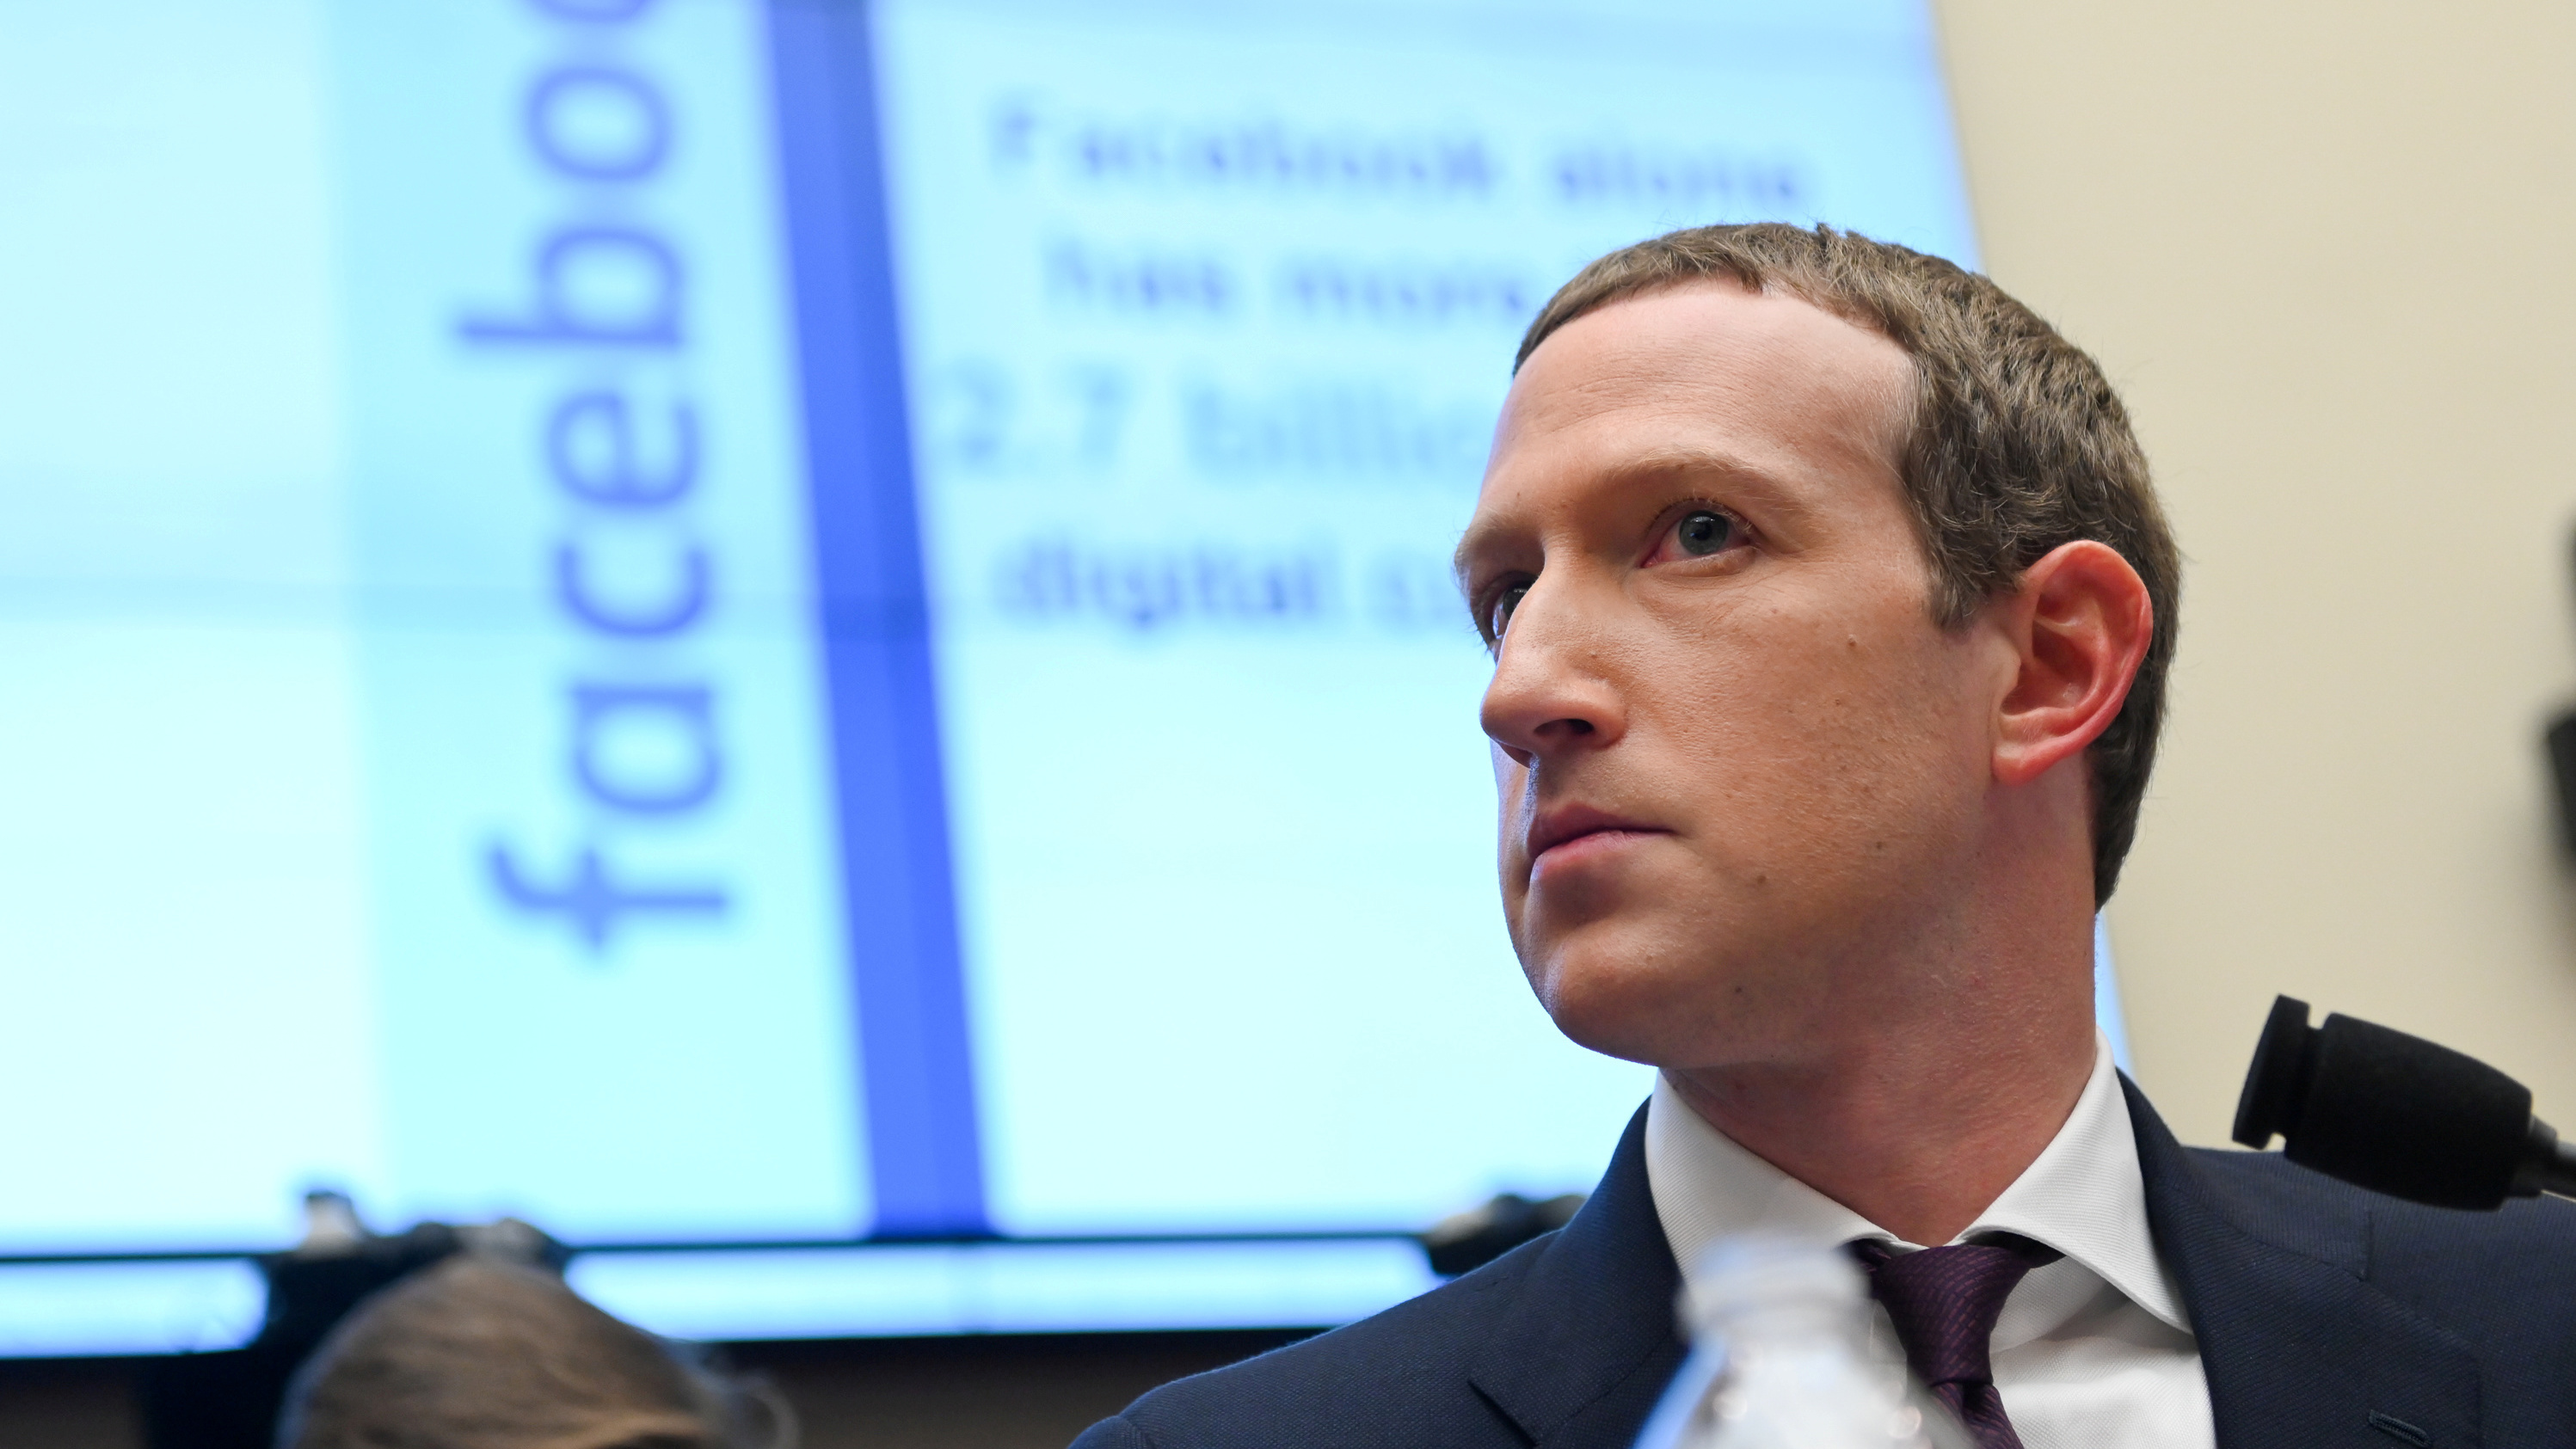 FEC Commissioner Rips Facebook Over Political Ad Policy: 'This Will Not Do'